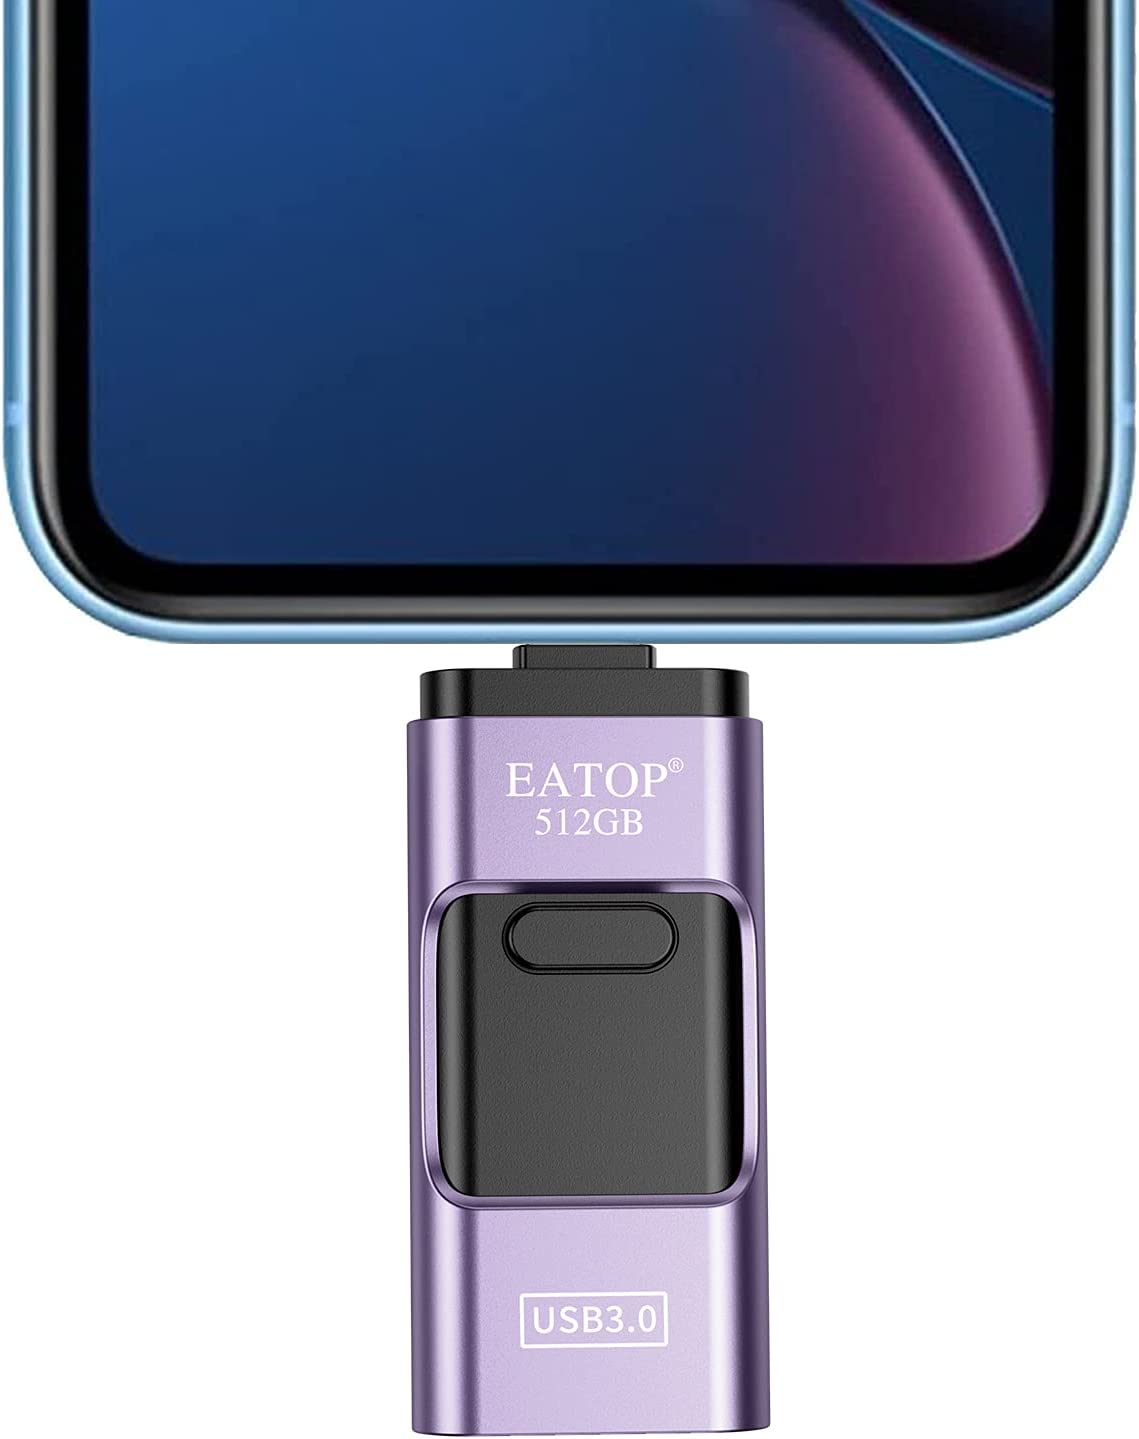 EATOP USB Flash Drive 512GB Storage for Photos, USB Memory Stick Thumb Drive Photo Storage Device Compatible with iPhone, Android and Computers (Purple)